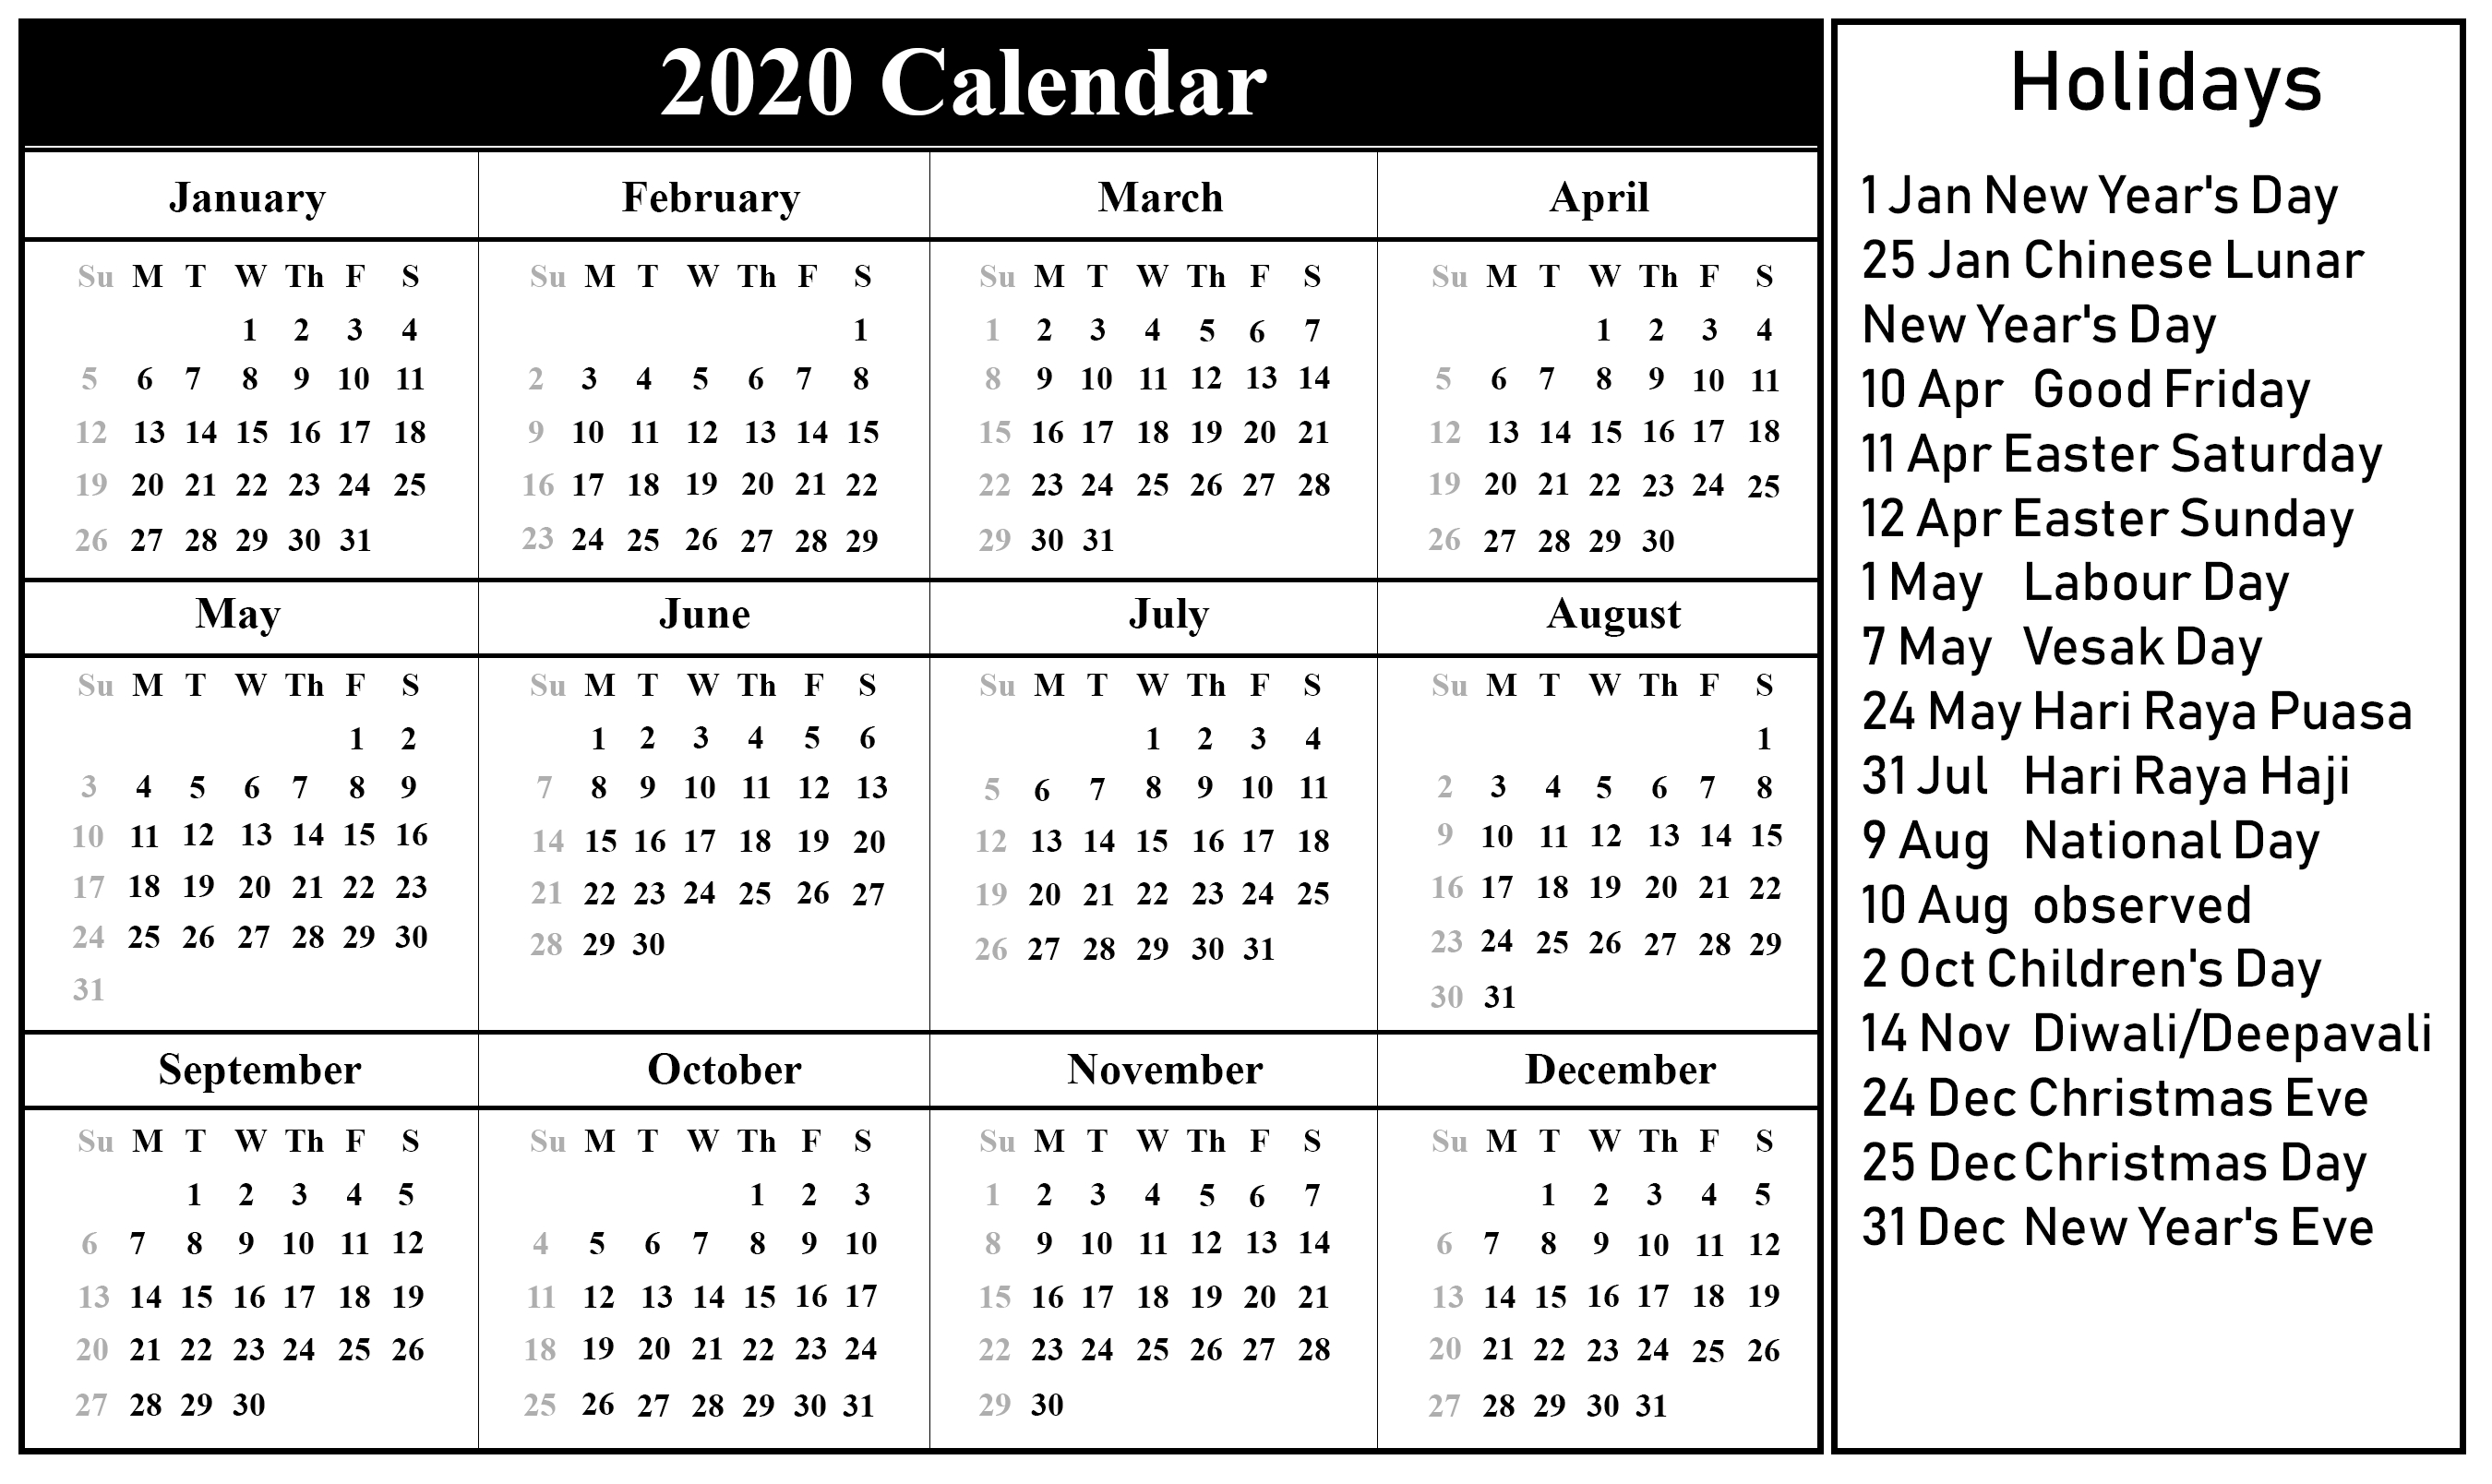 2020 Year Calendar With Holidays - Remar-2020 Calenderwa School Holidays Printable